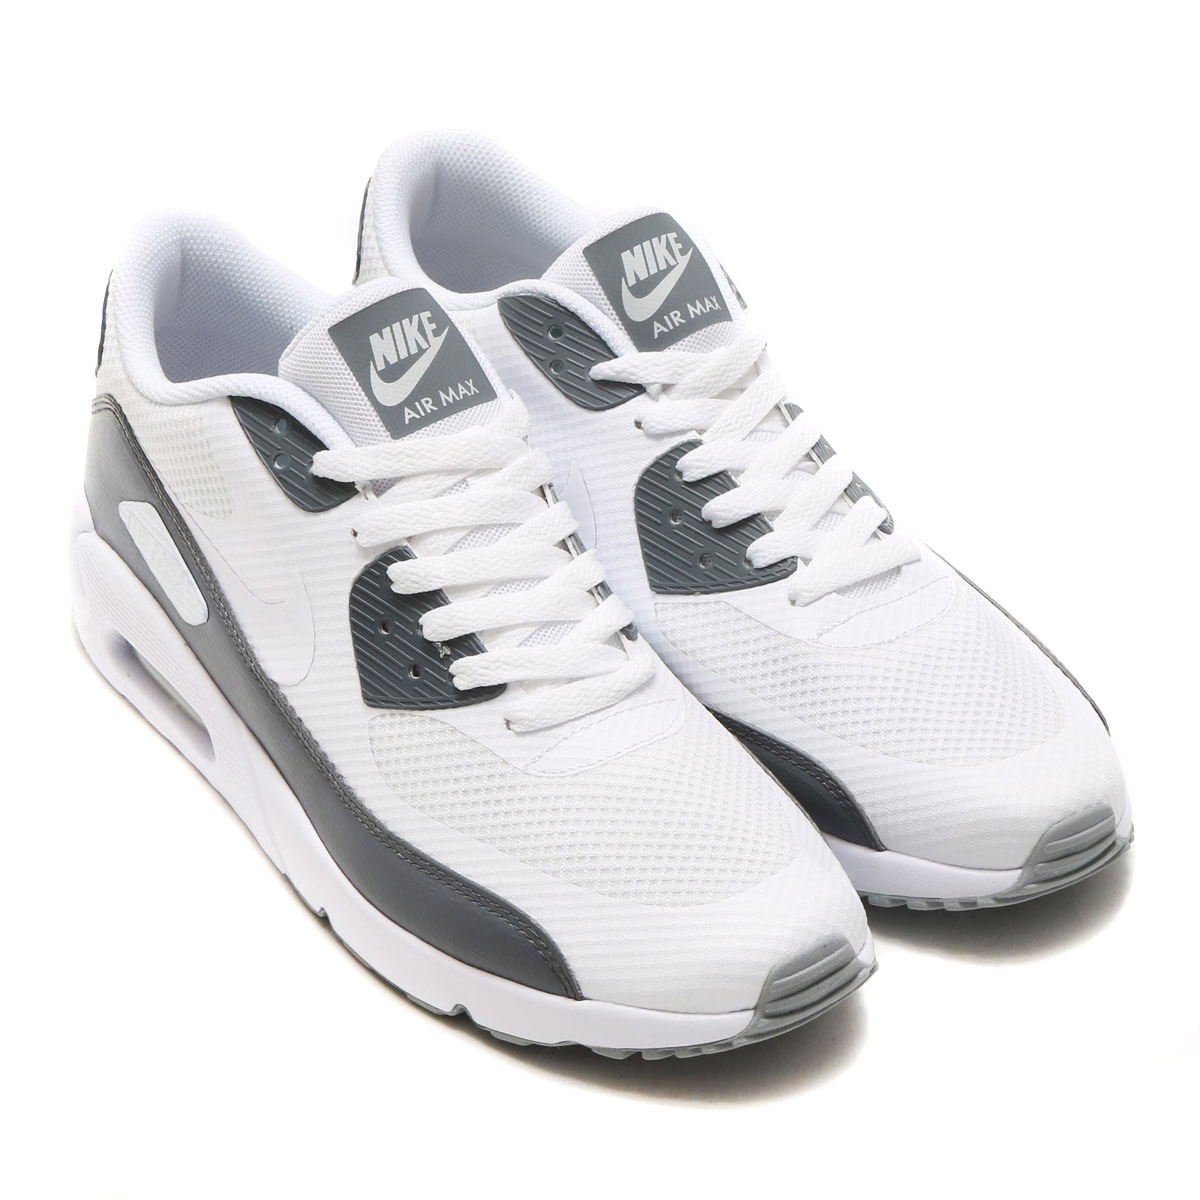 a53f0b5d28e NIKE AIR MAX 90 ULTRA 2.0 ESSENTIAL (Kie Ney AMAX 90 ultra 2.0 essential)  WHITE WHITE-COOL GREY-WOLF GREY  men gap Dis sneakers  17SU-I